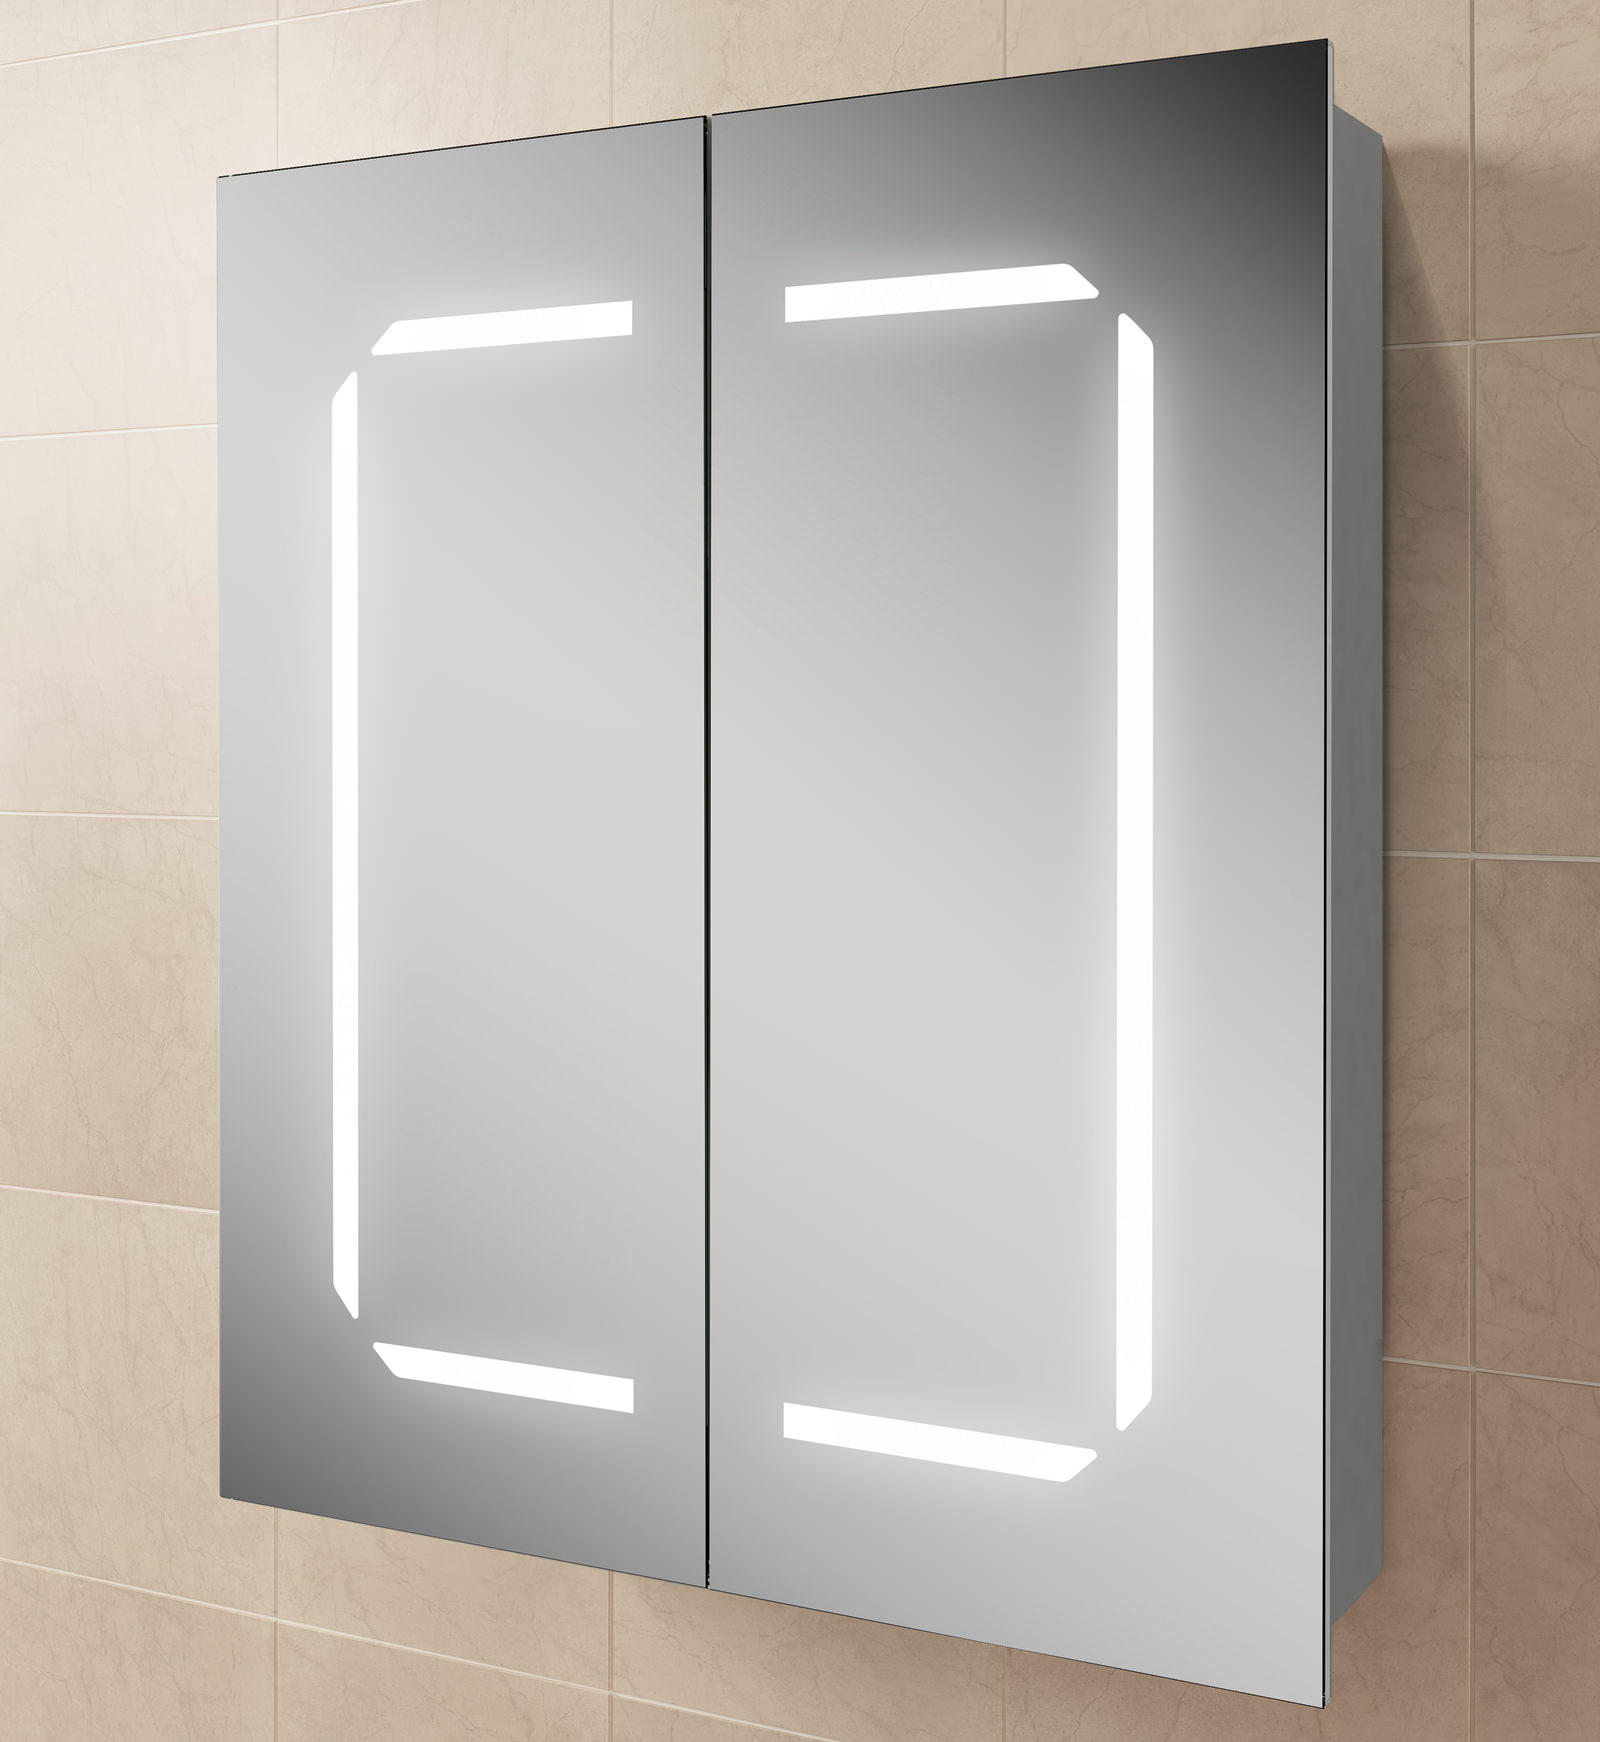 Hib zephyr 60 steam free aluminium mirrored cabinet 600 x for Bathroom cabinets 700mm